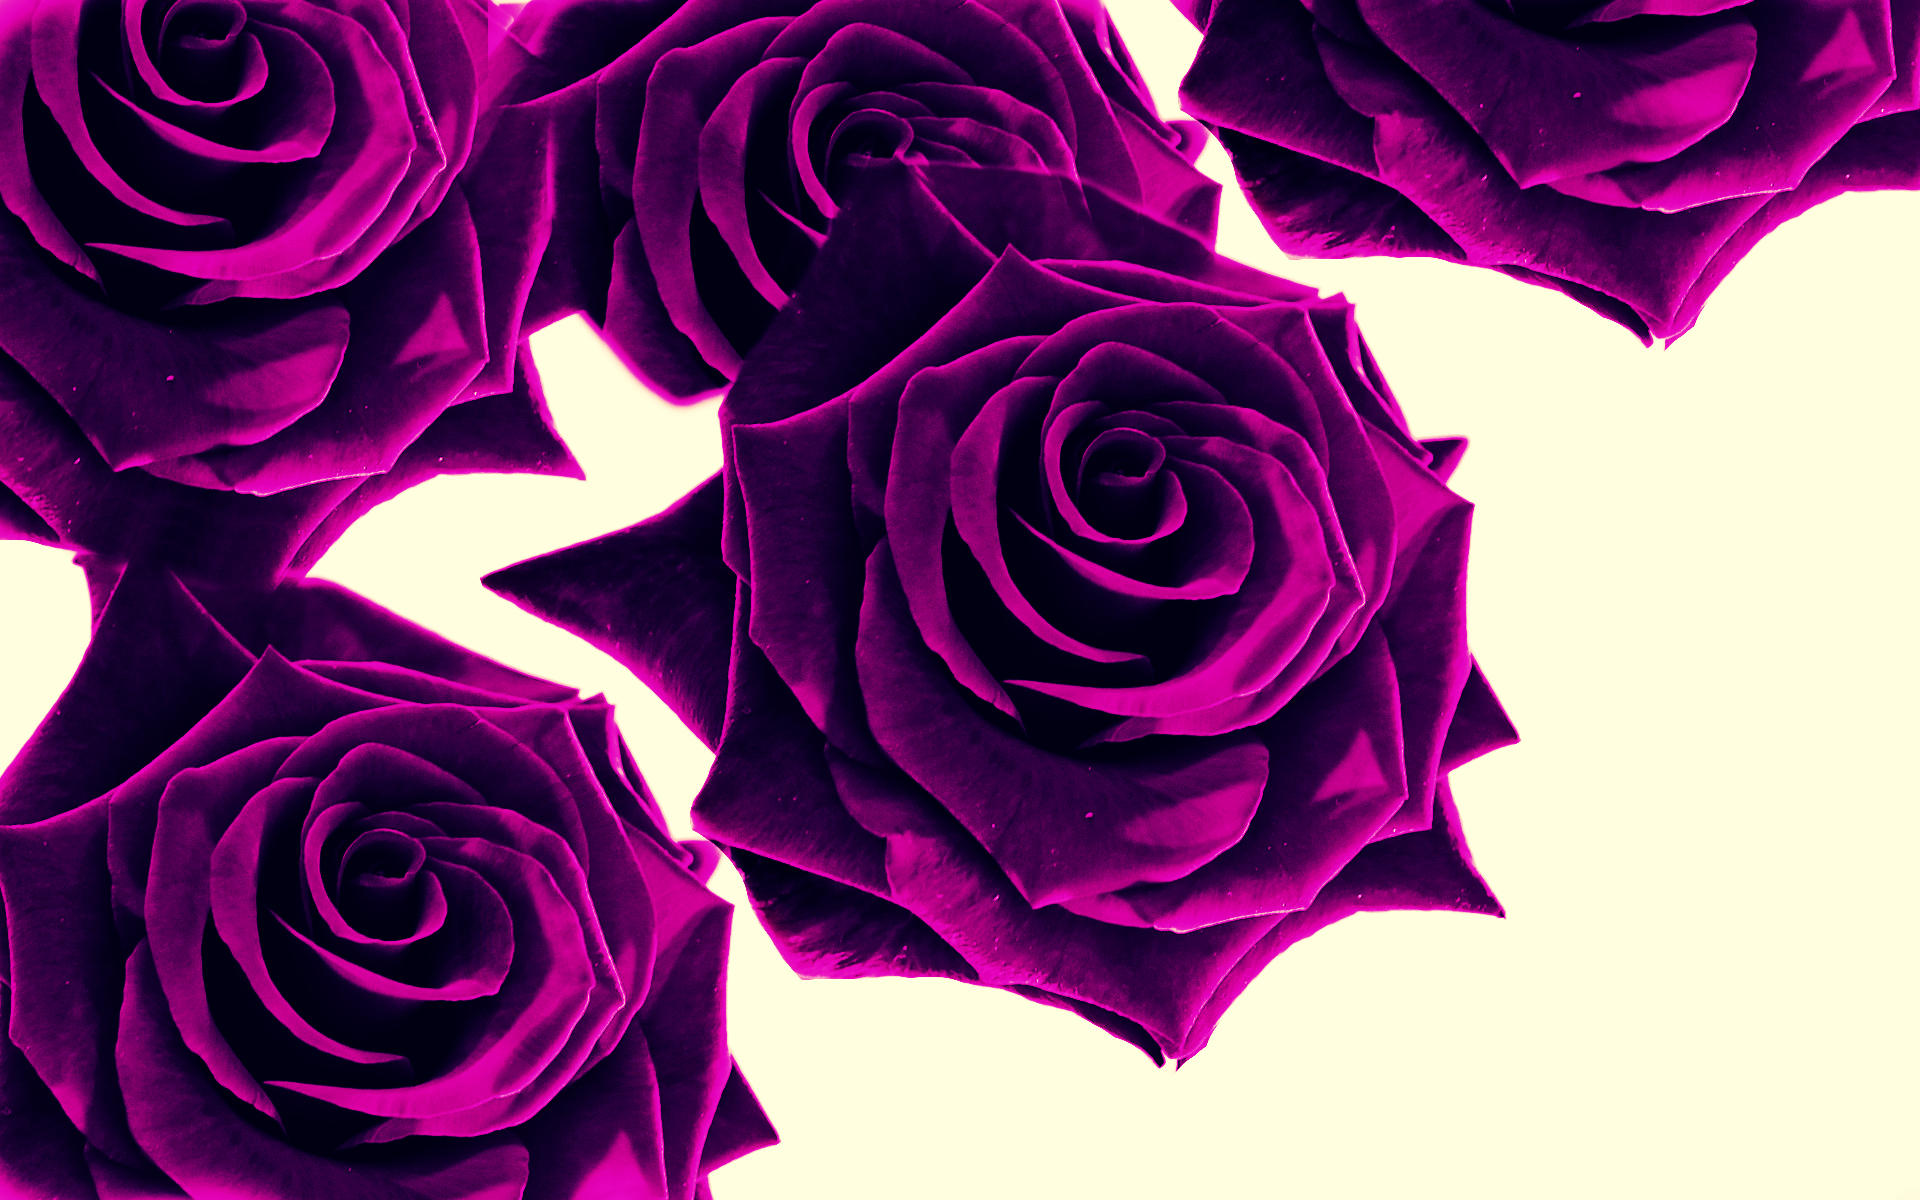 wallpapers of purple roses - photo #7